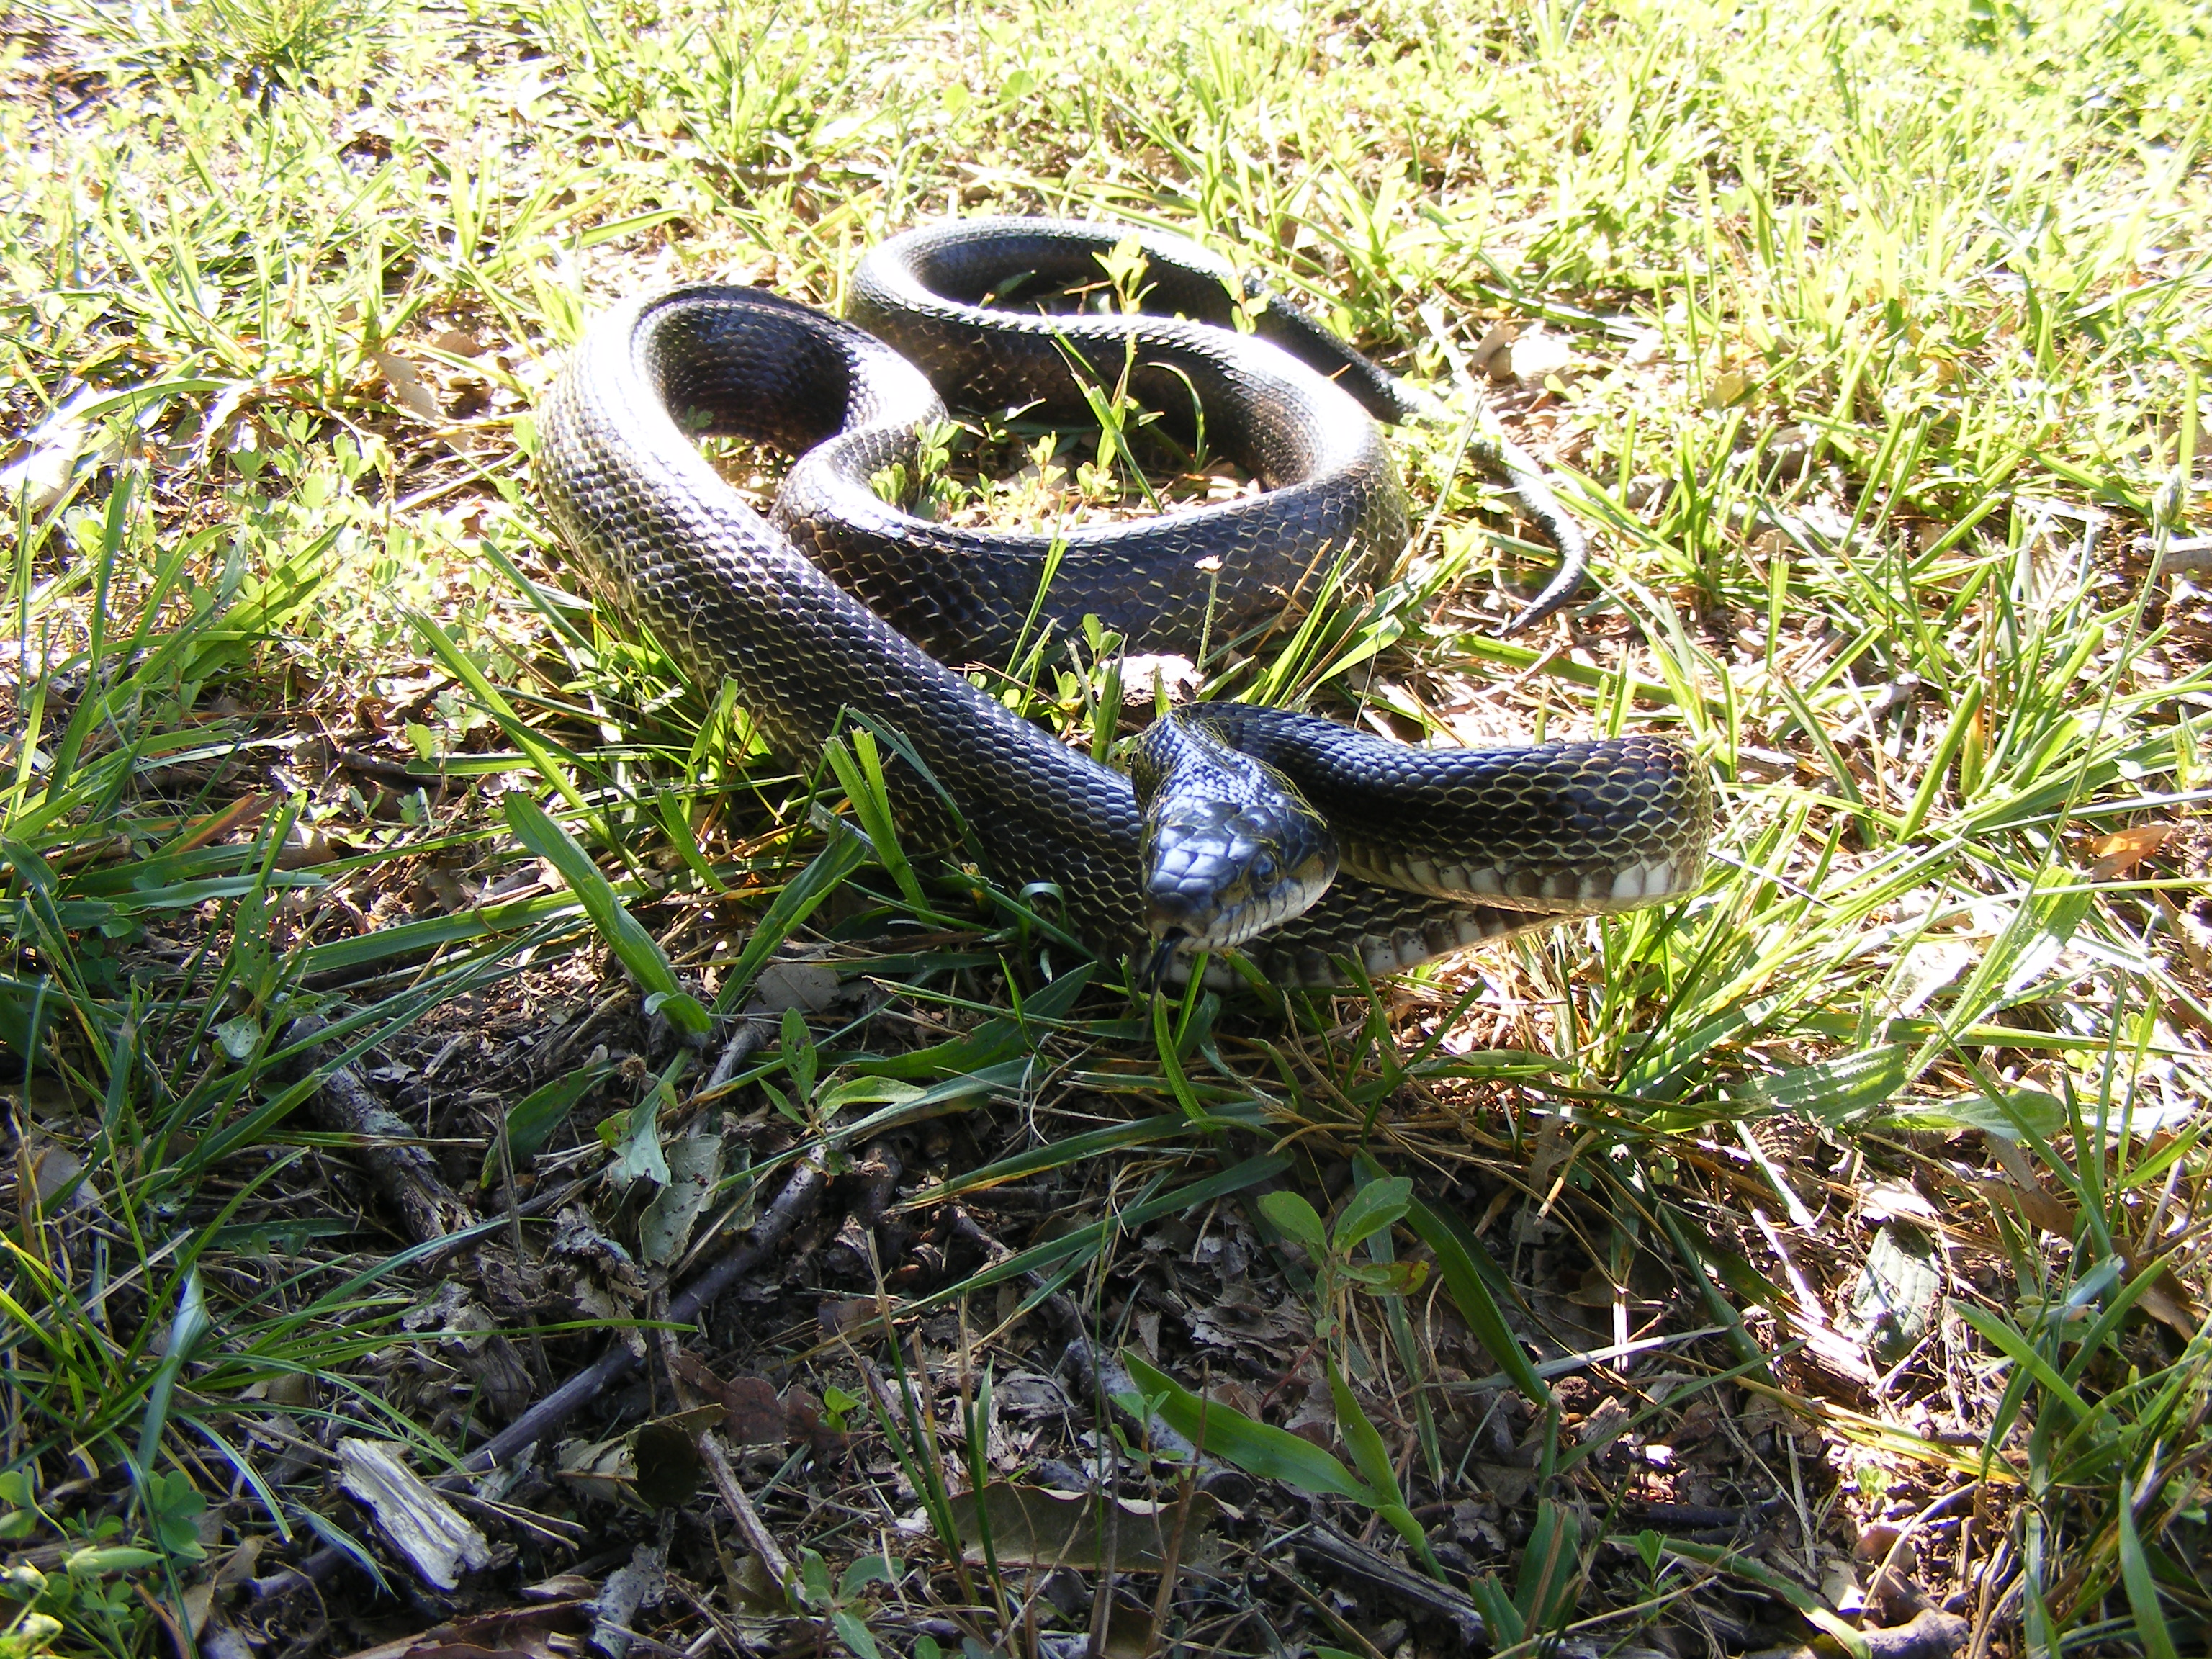 Black Rat Snake Soddy Daisy TN